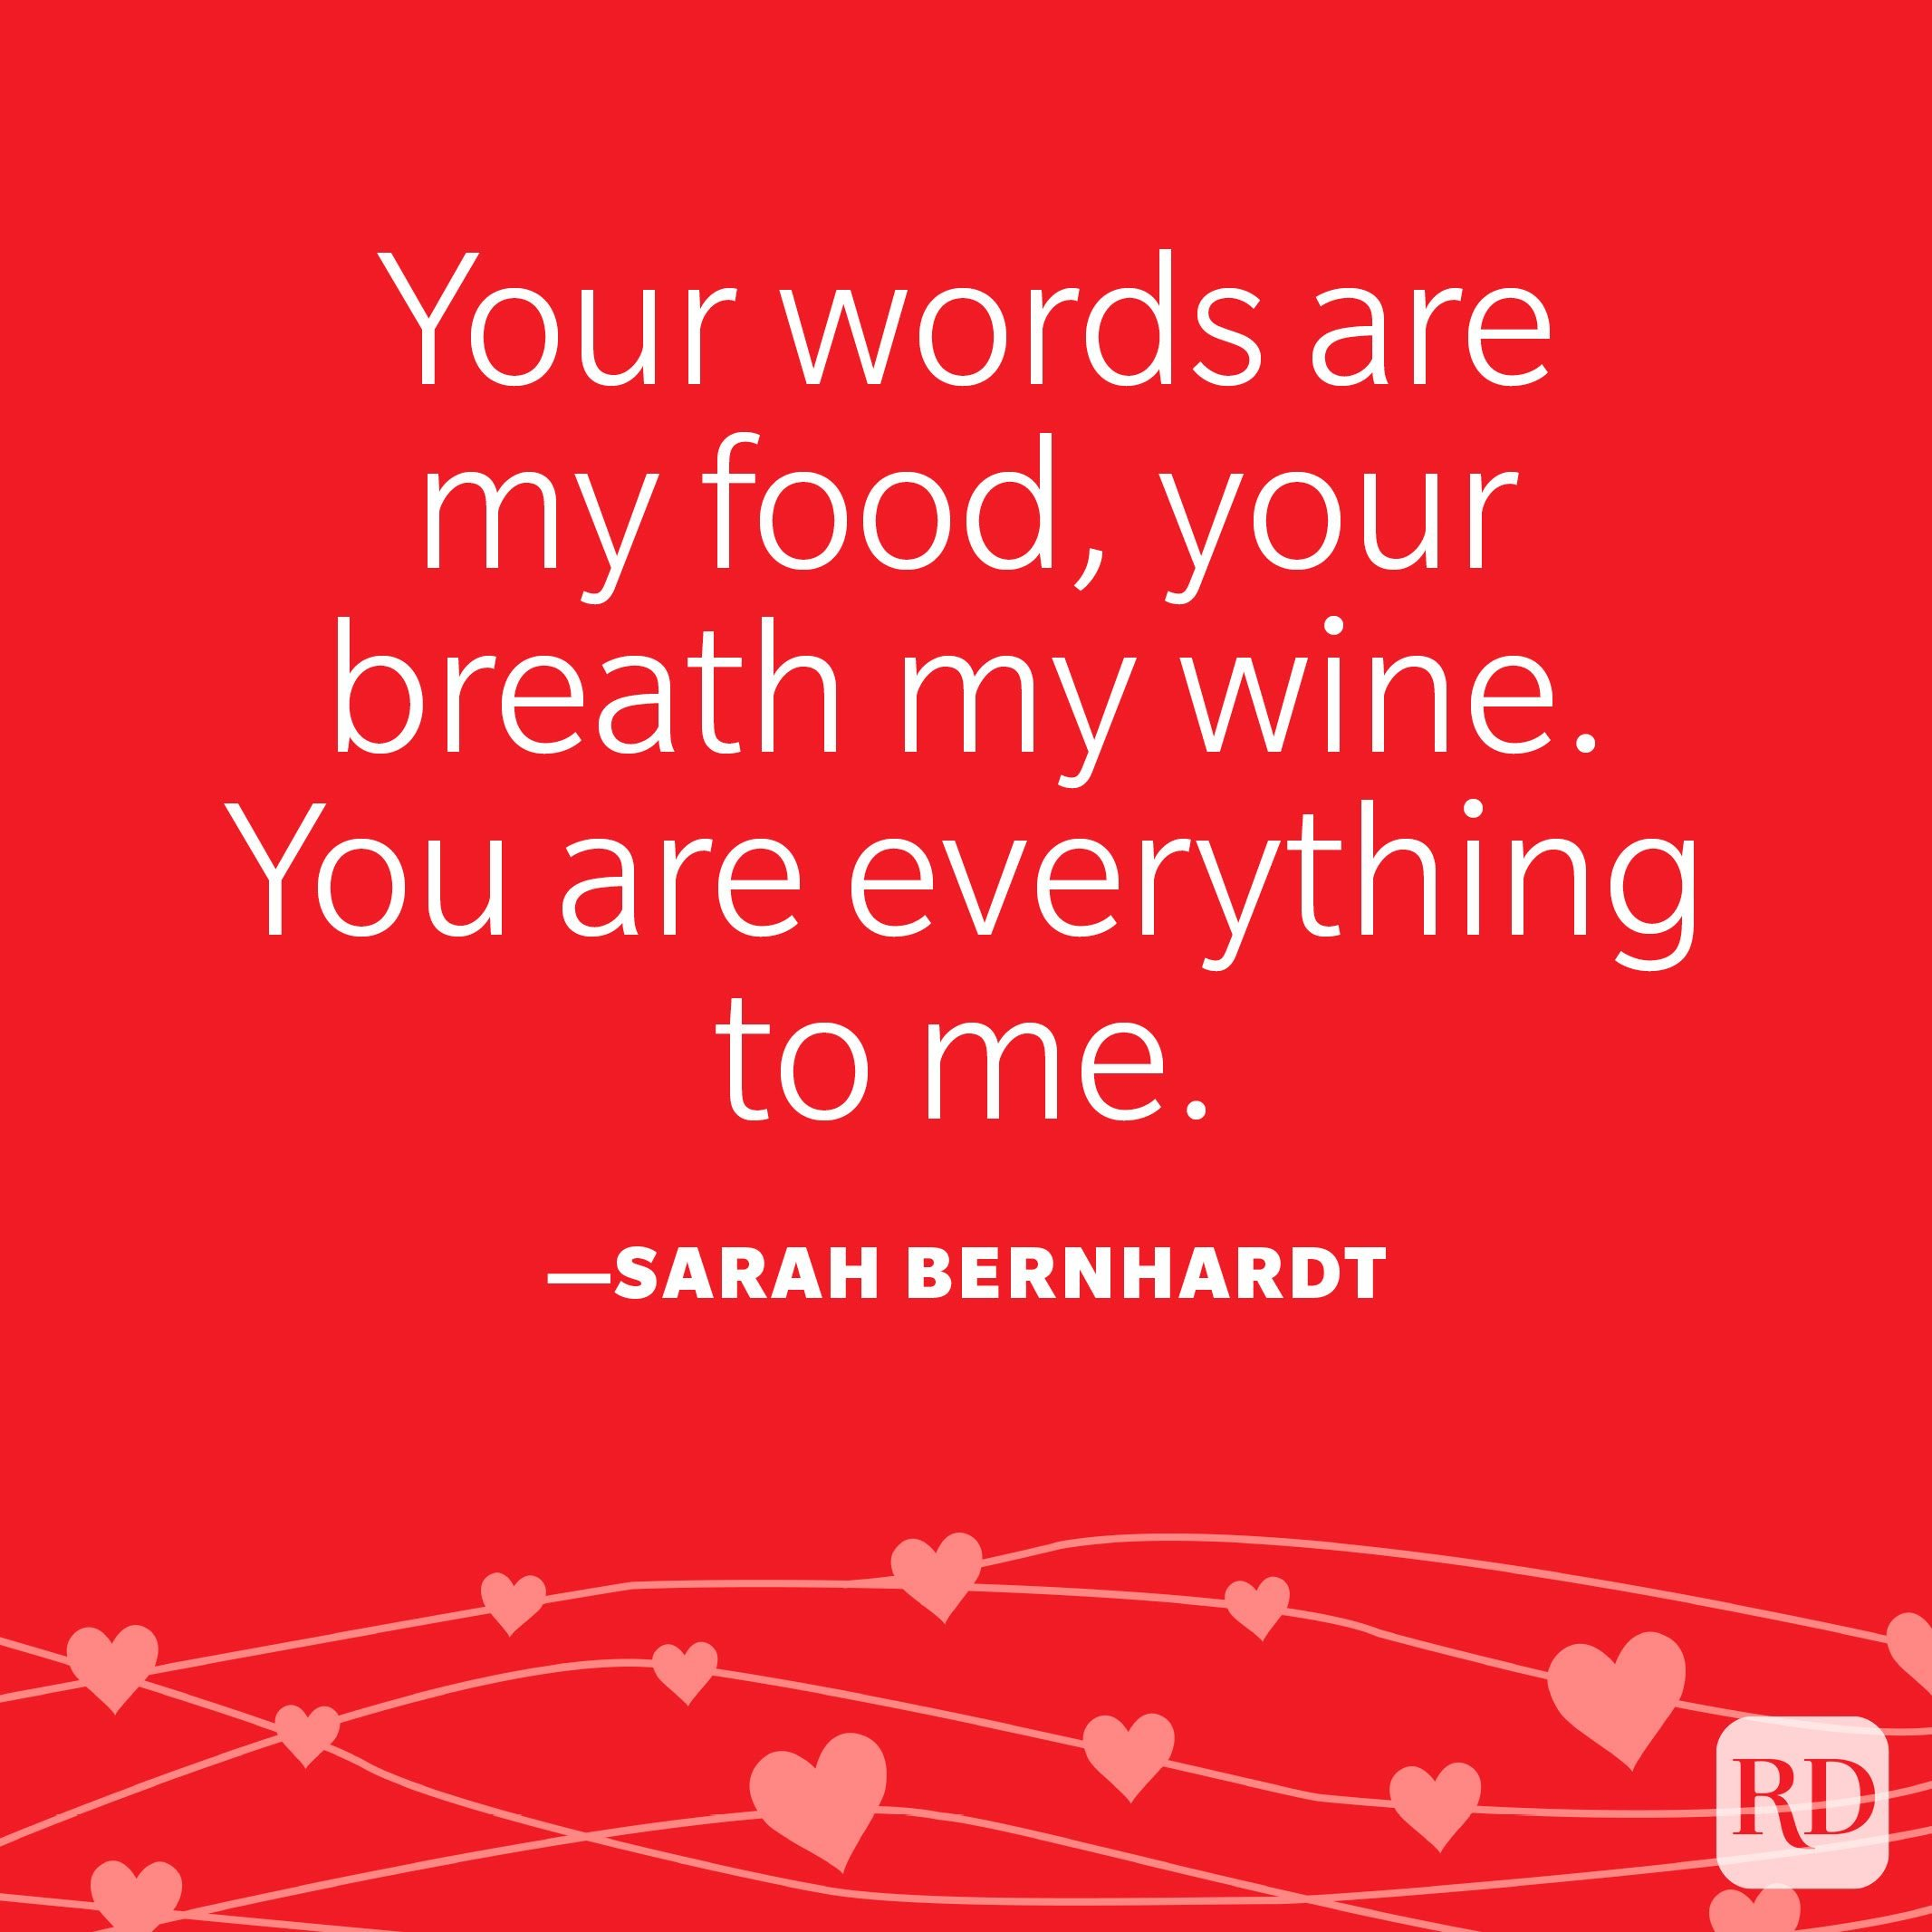 """""""Your words are my food, your breath my wine. You are everything to me."""" —Sarah Bernhardt"""